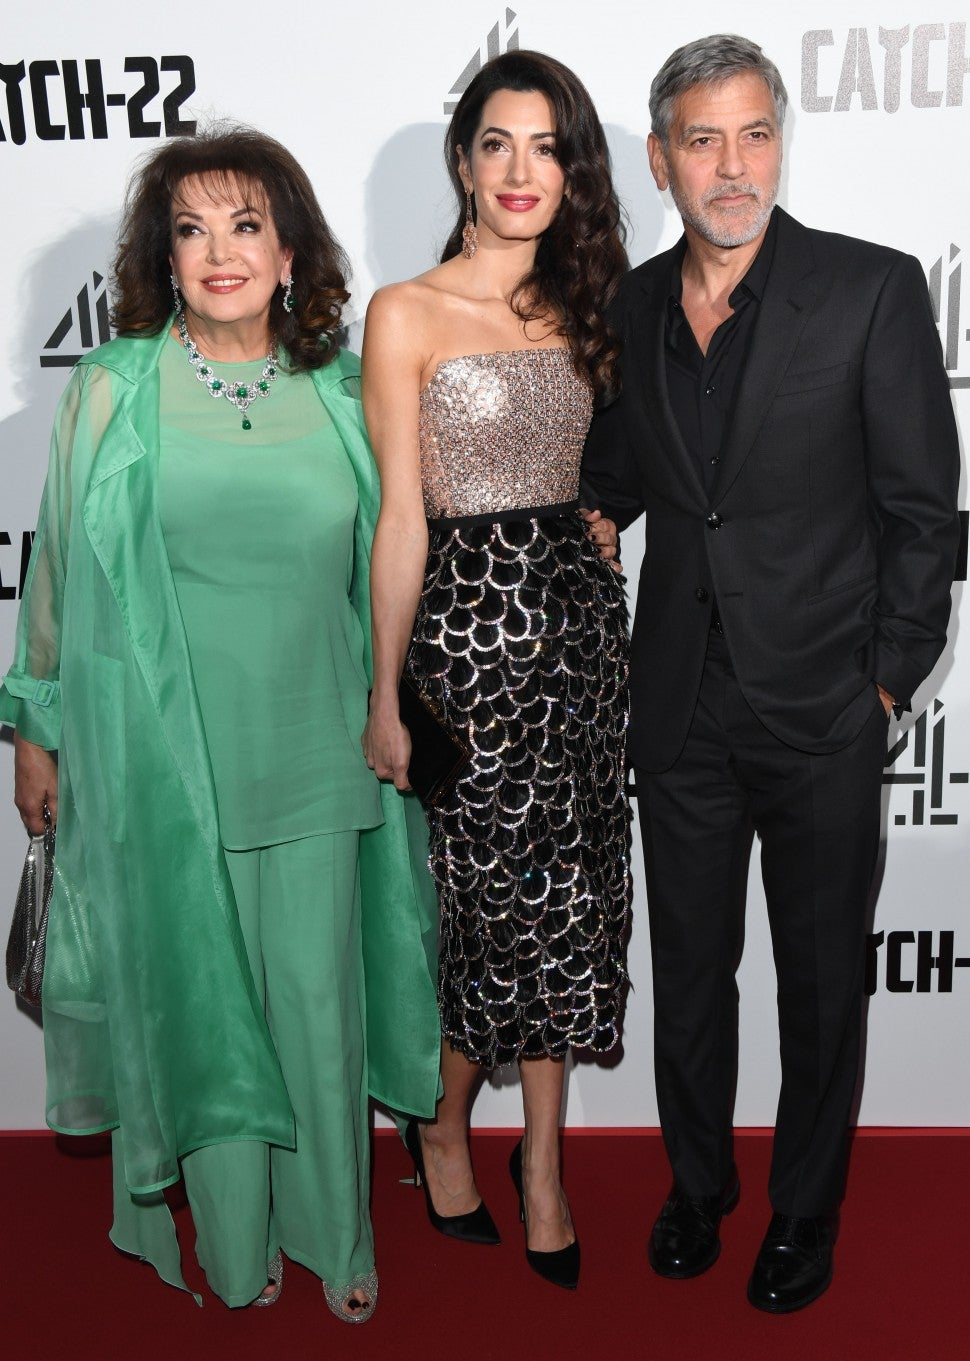 Baria Alamuddin, Amal Clooney and George Clooney Catch 22 UK Premiere